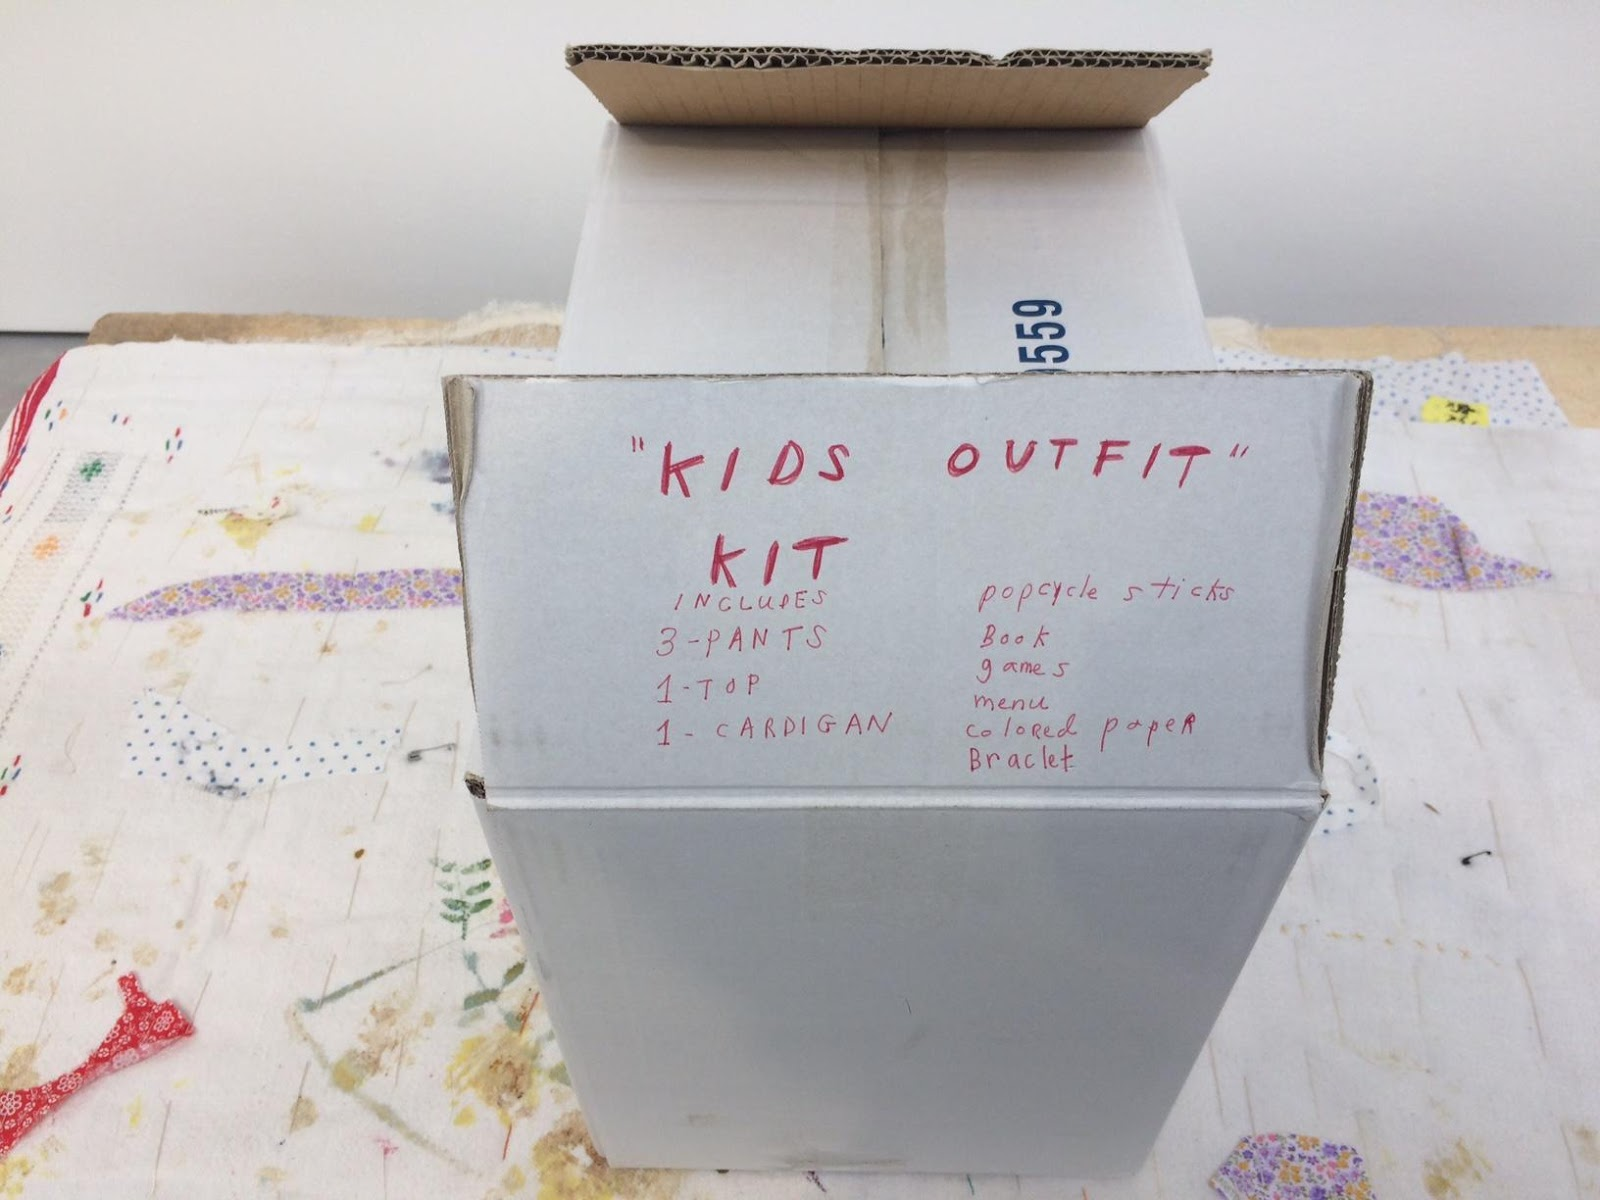 Susan Cianciolo,  Kids Outfit Kit  (2015) on view at Modern Art, London. Photo courtesy the author.